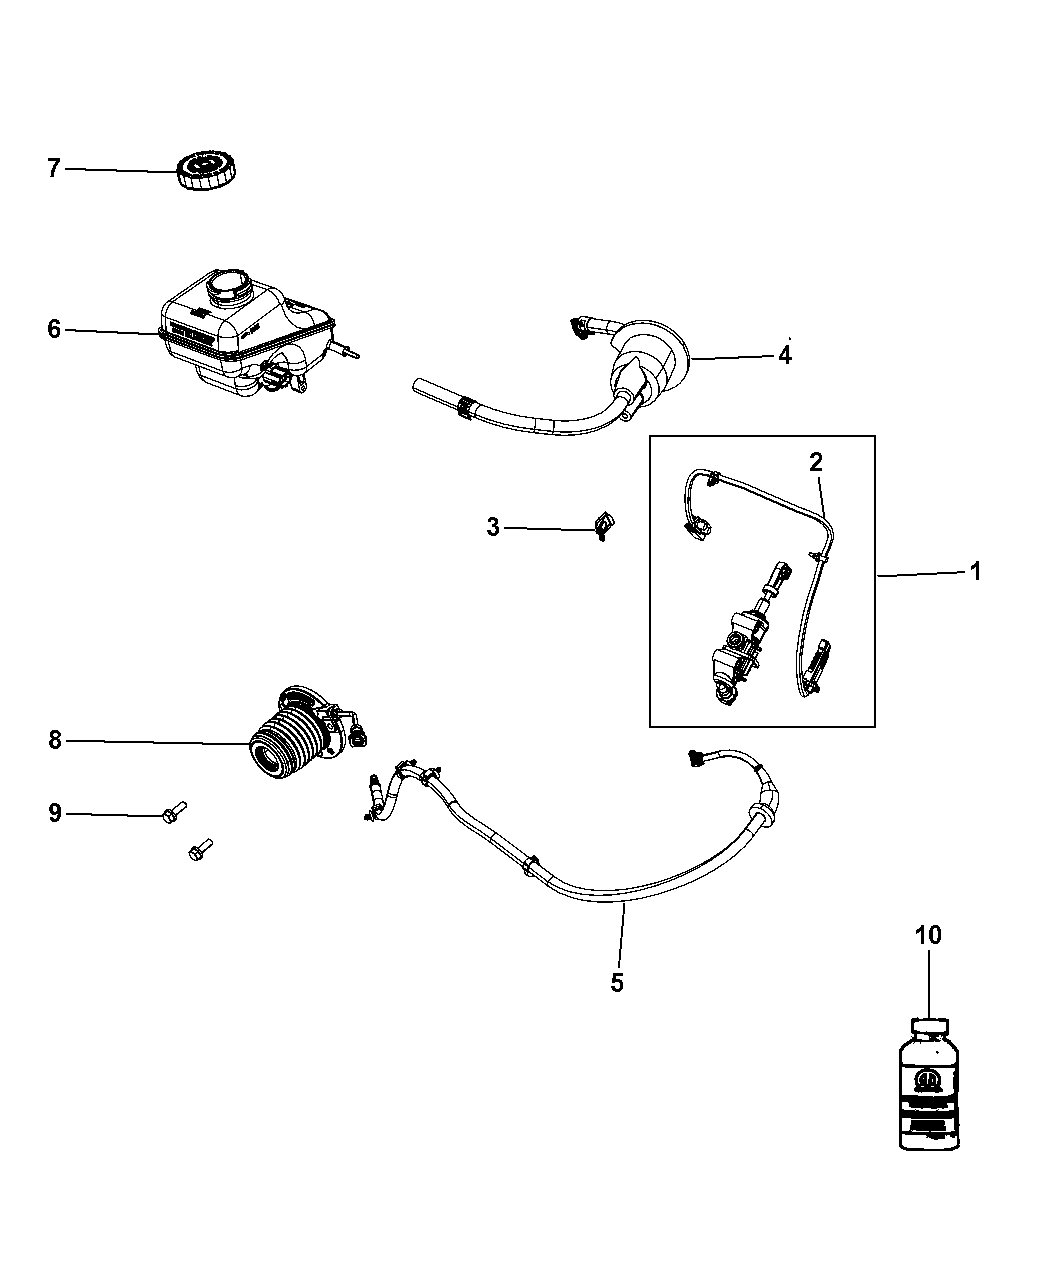 2012 Dodge Challenger Controls, Hydraulic Clutch